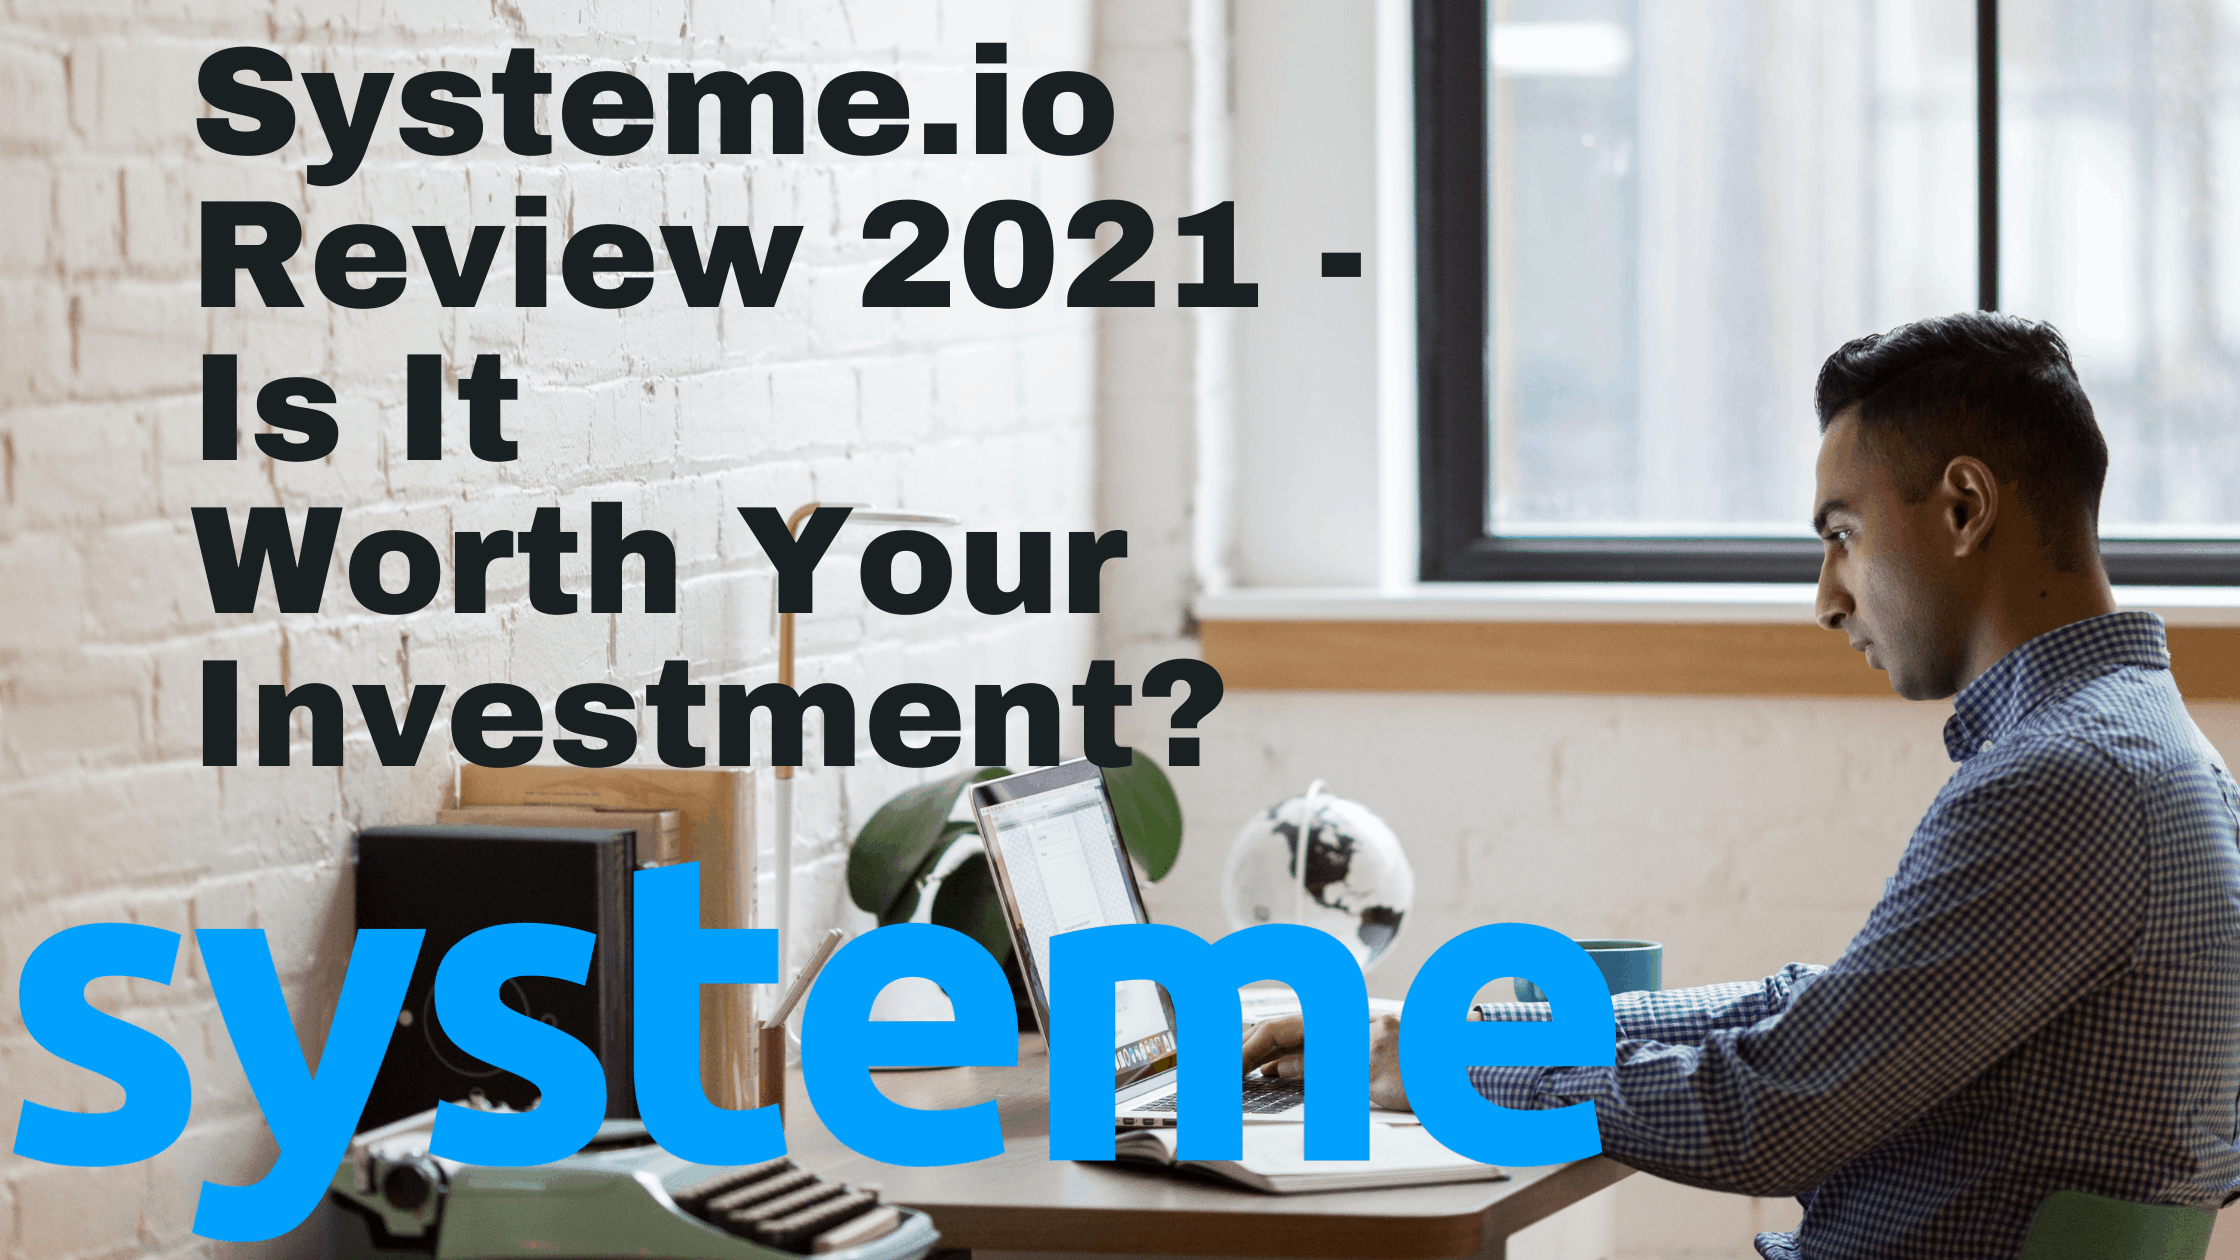 Systeme-io Review 2021